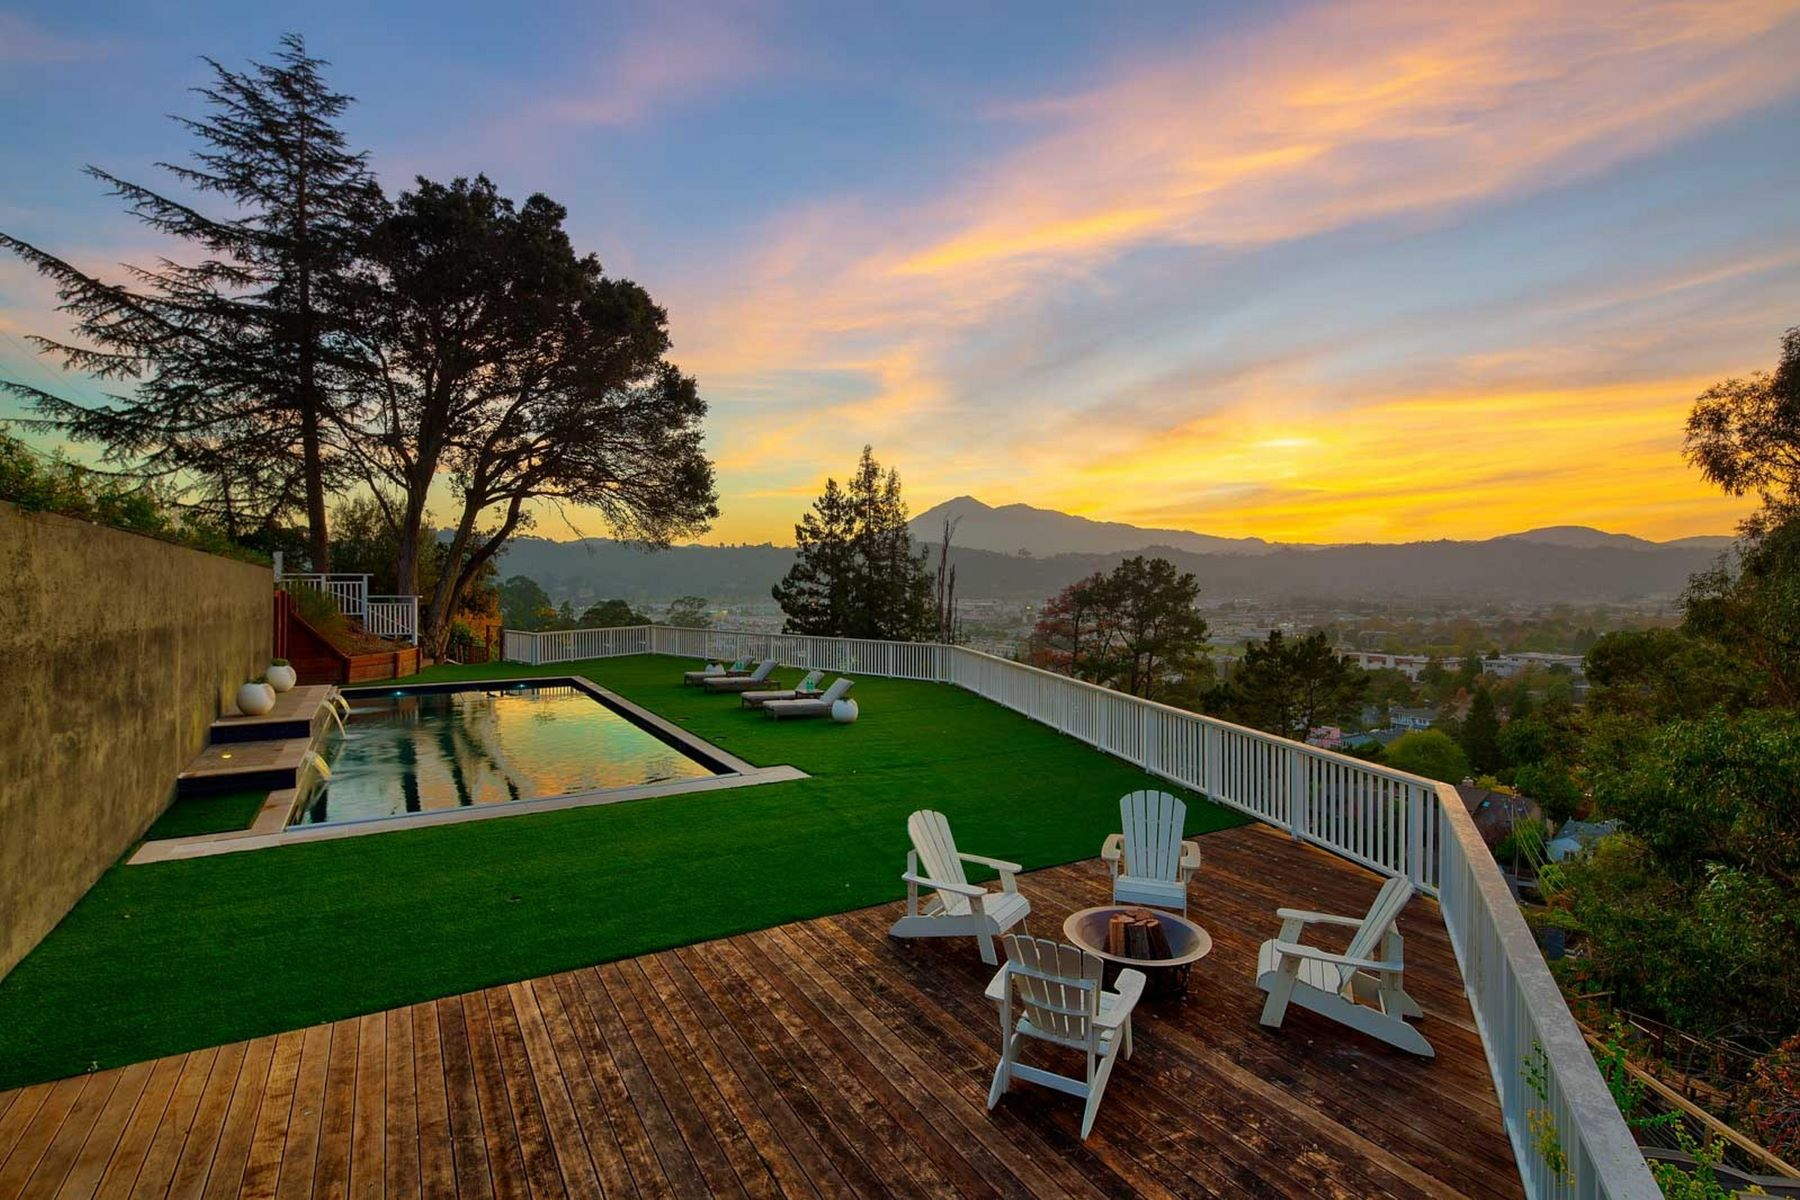 Single Family Homes for Active at Gated Country Club Estate Offering Resort-Style Living with Mount Tam Views 35 West Seaview Avenue San Rafael, California 94901 United States